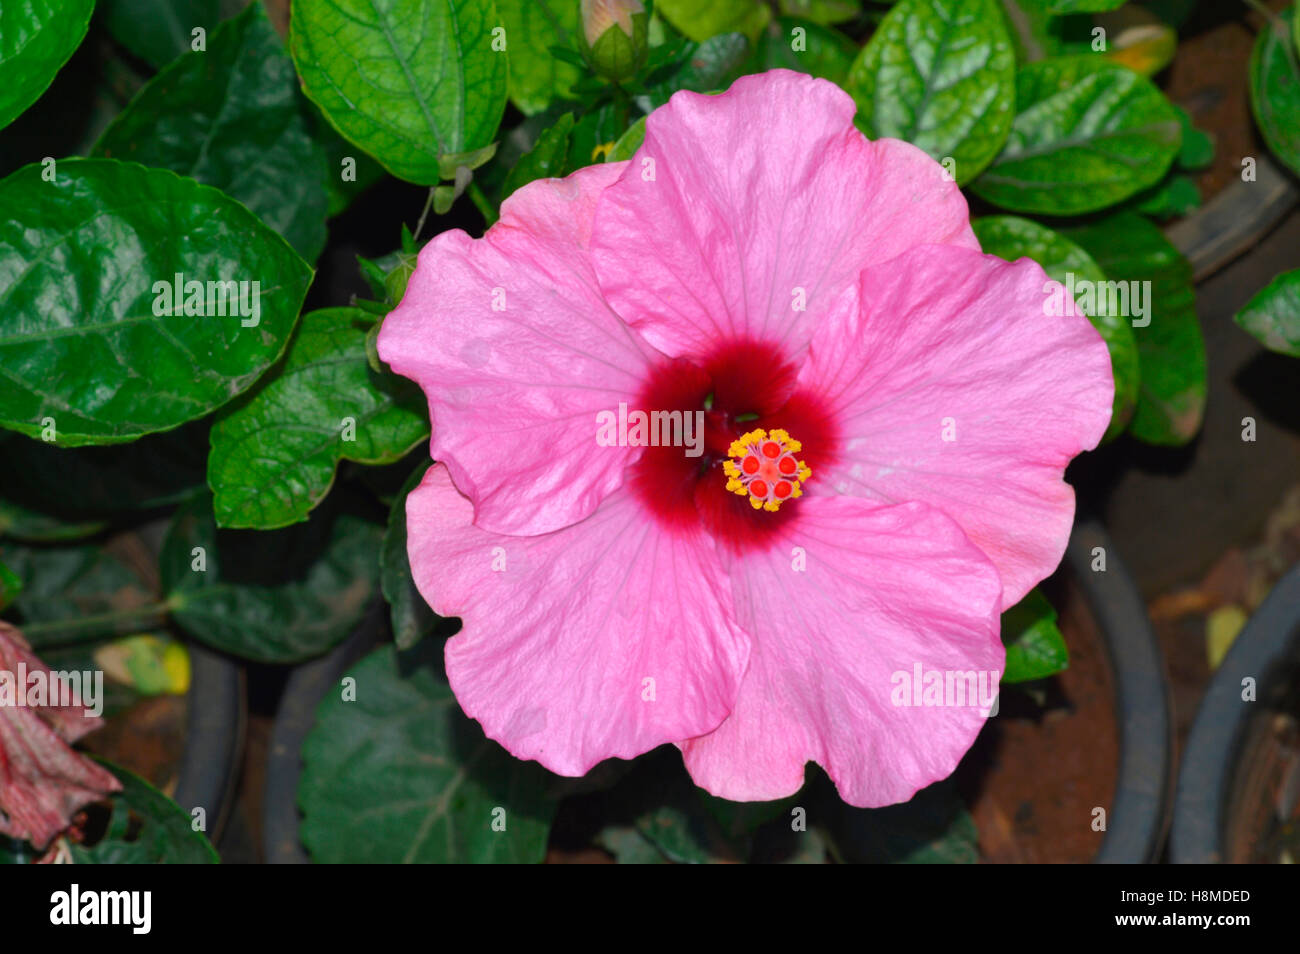 Pink hibiscus flower pune stock photo 125839461 alamy pink hibiscus flower pune izmirmasajfo